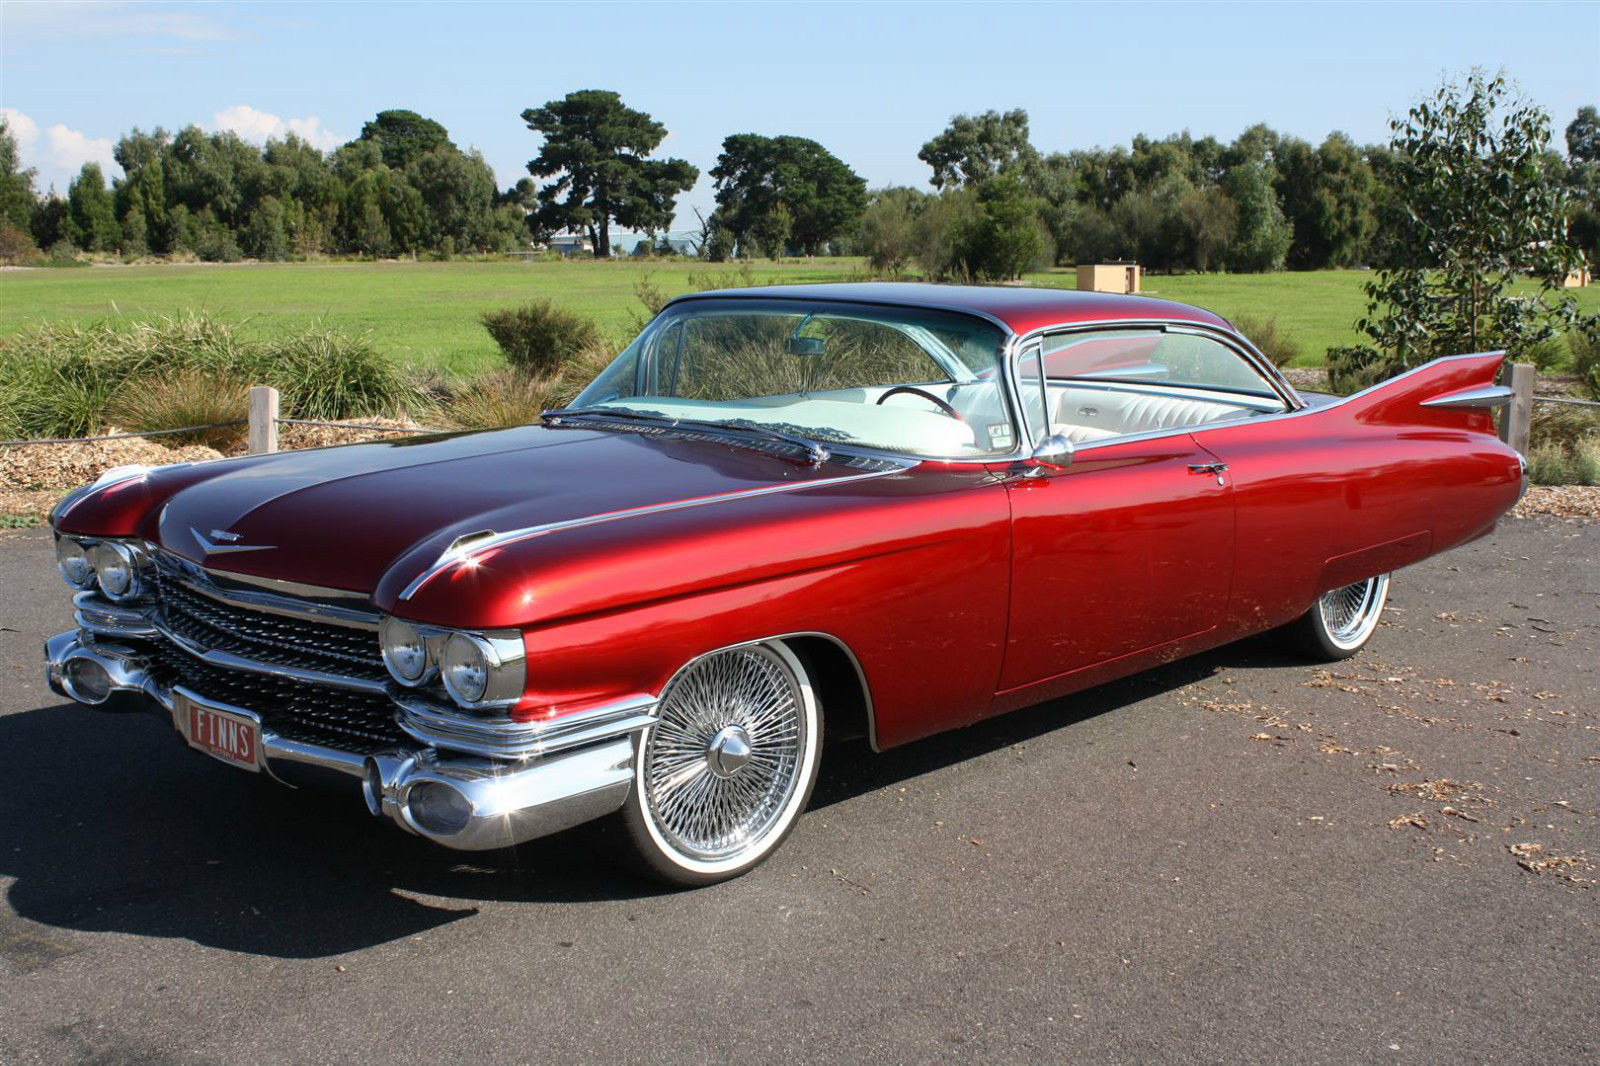 94 Cadillac Deville Fuse Box Wiring Diagrams For Dummies Diagram Concours Oldsmobile 93 Location